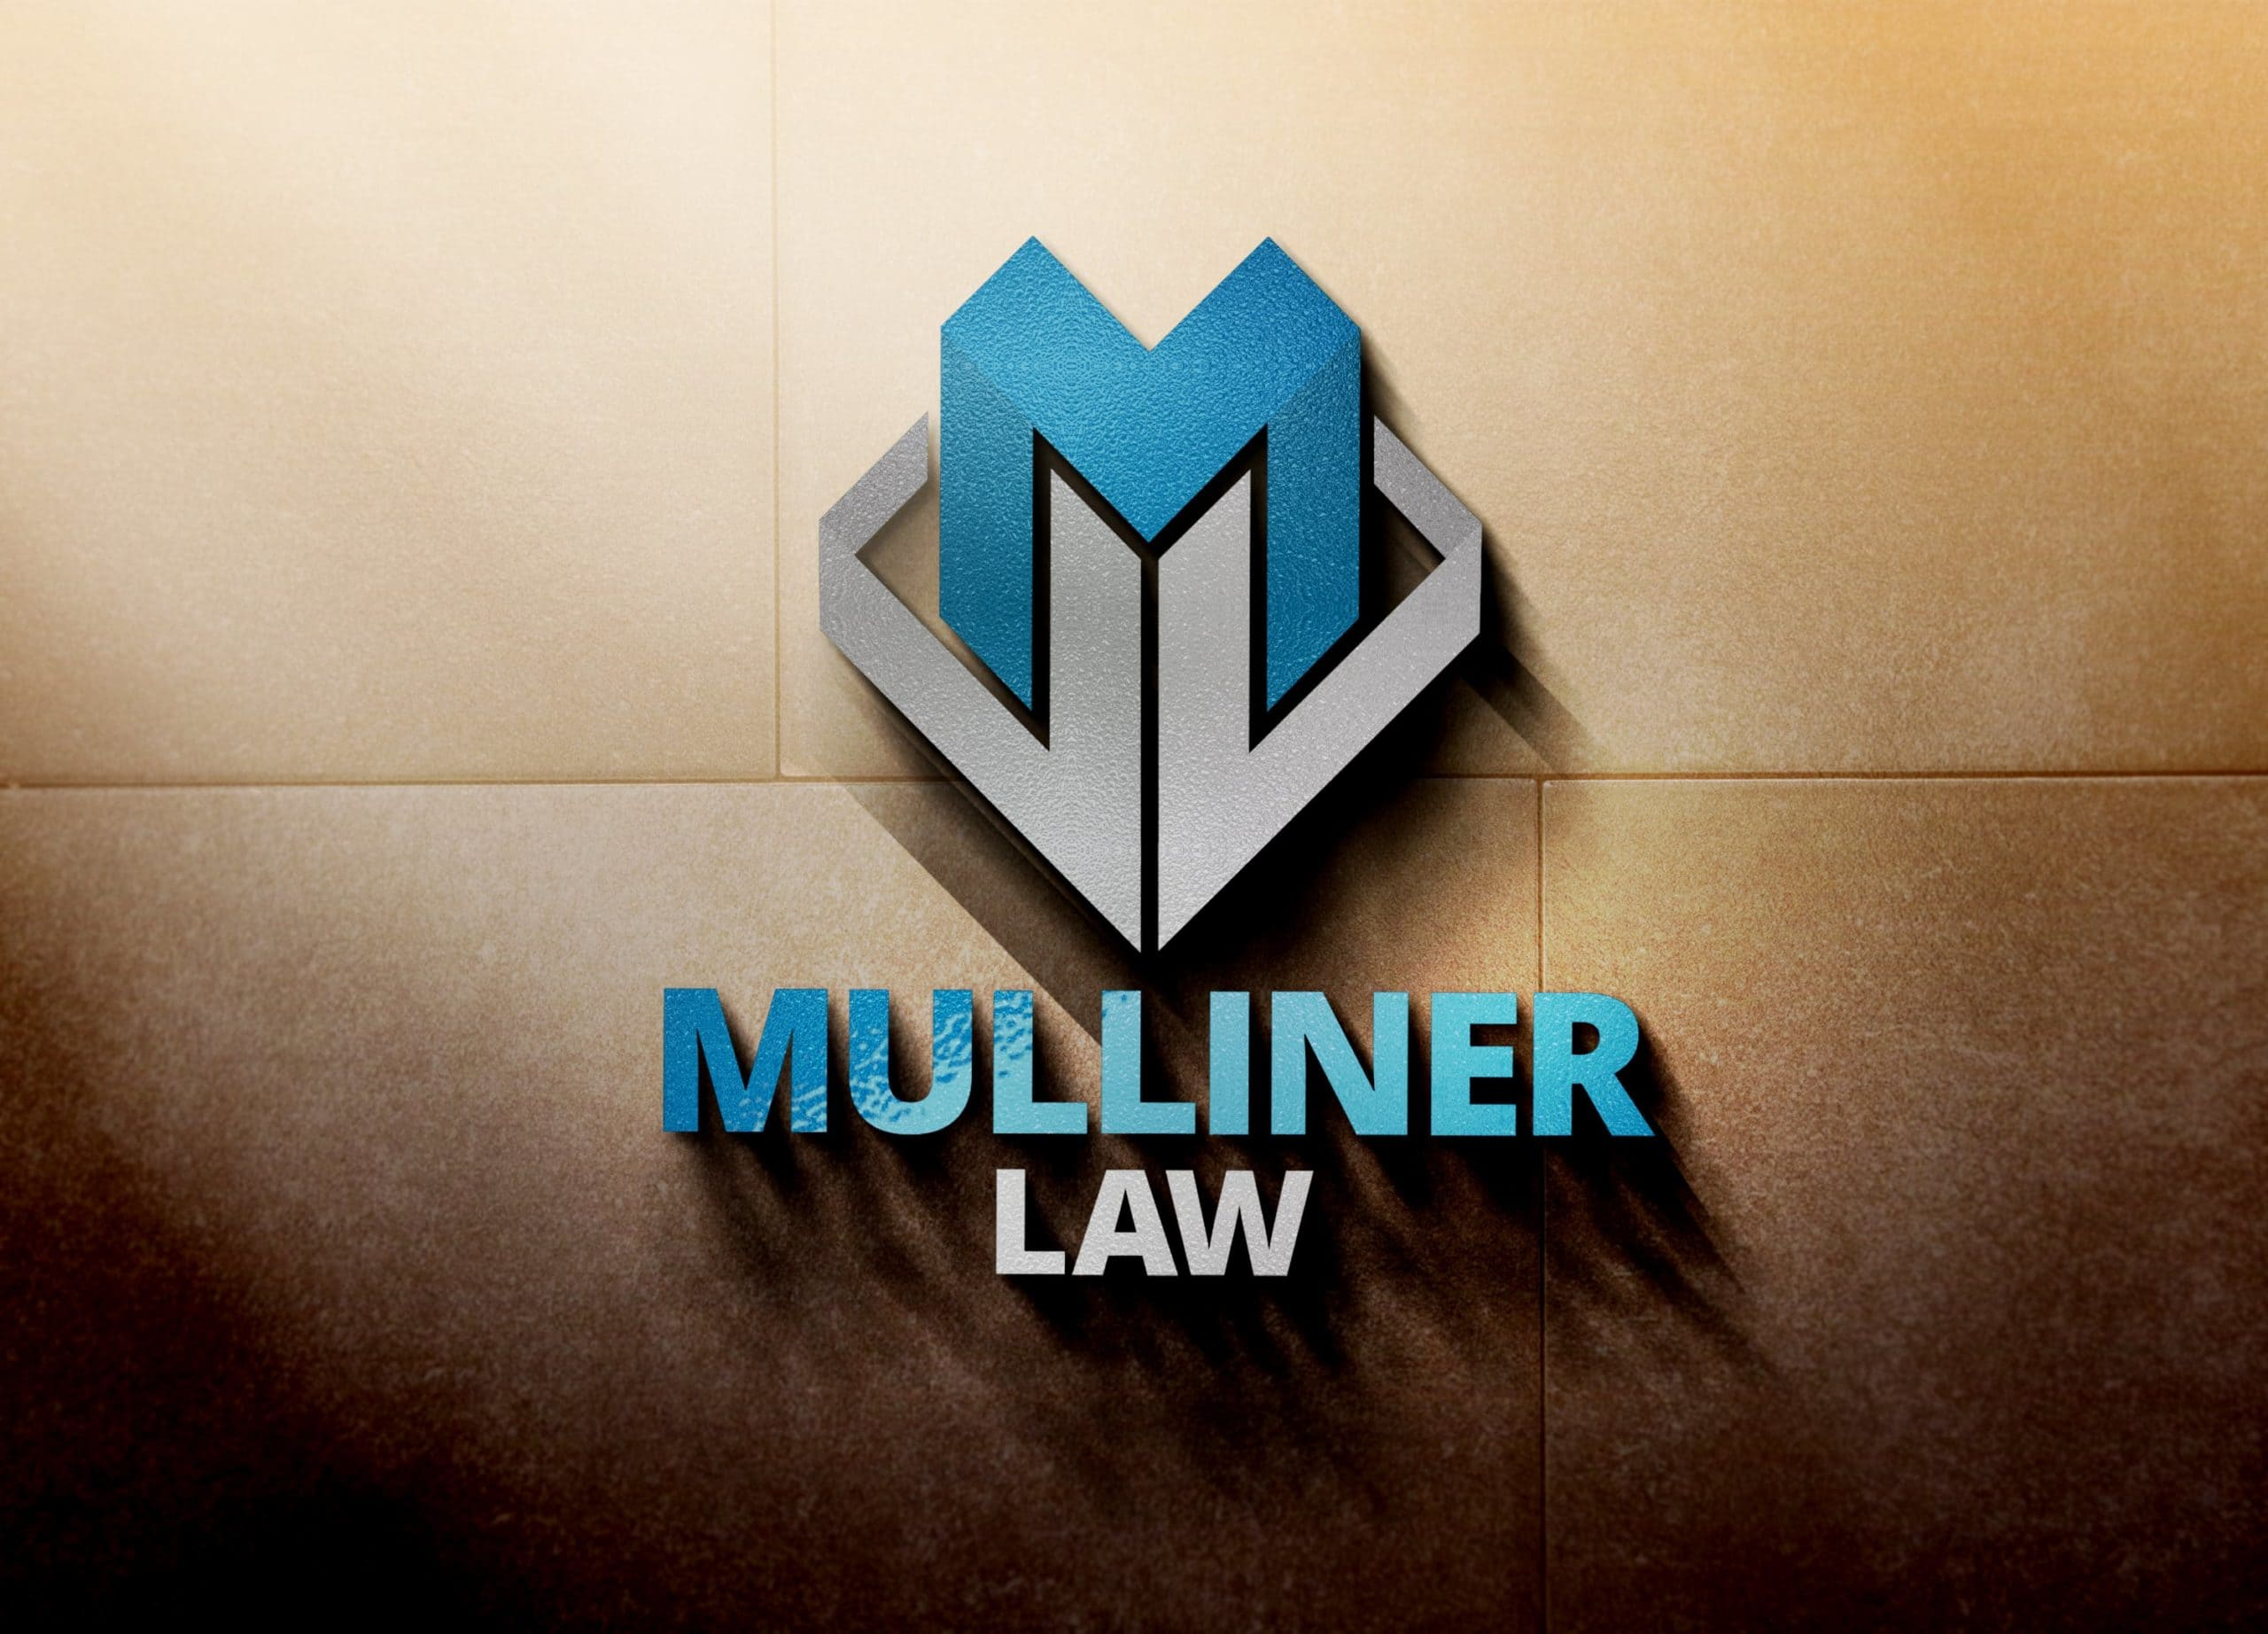 Girraphic Mulliner Law